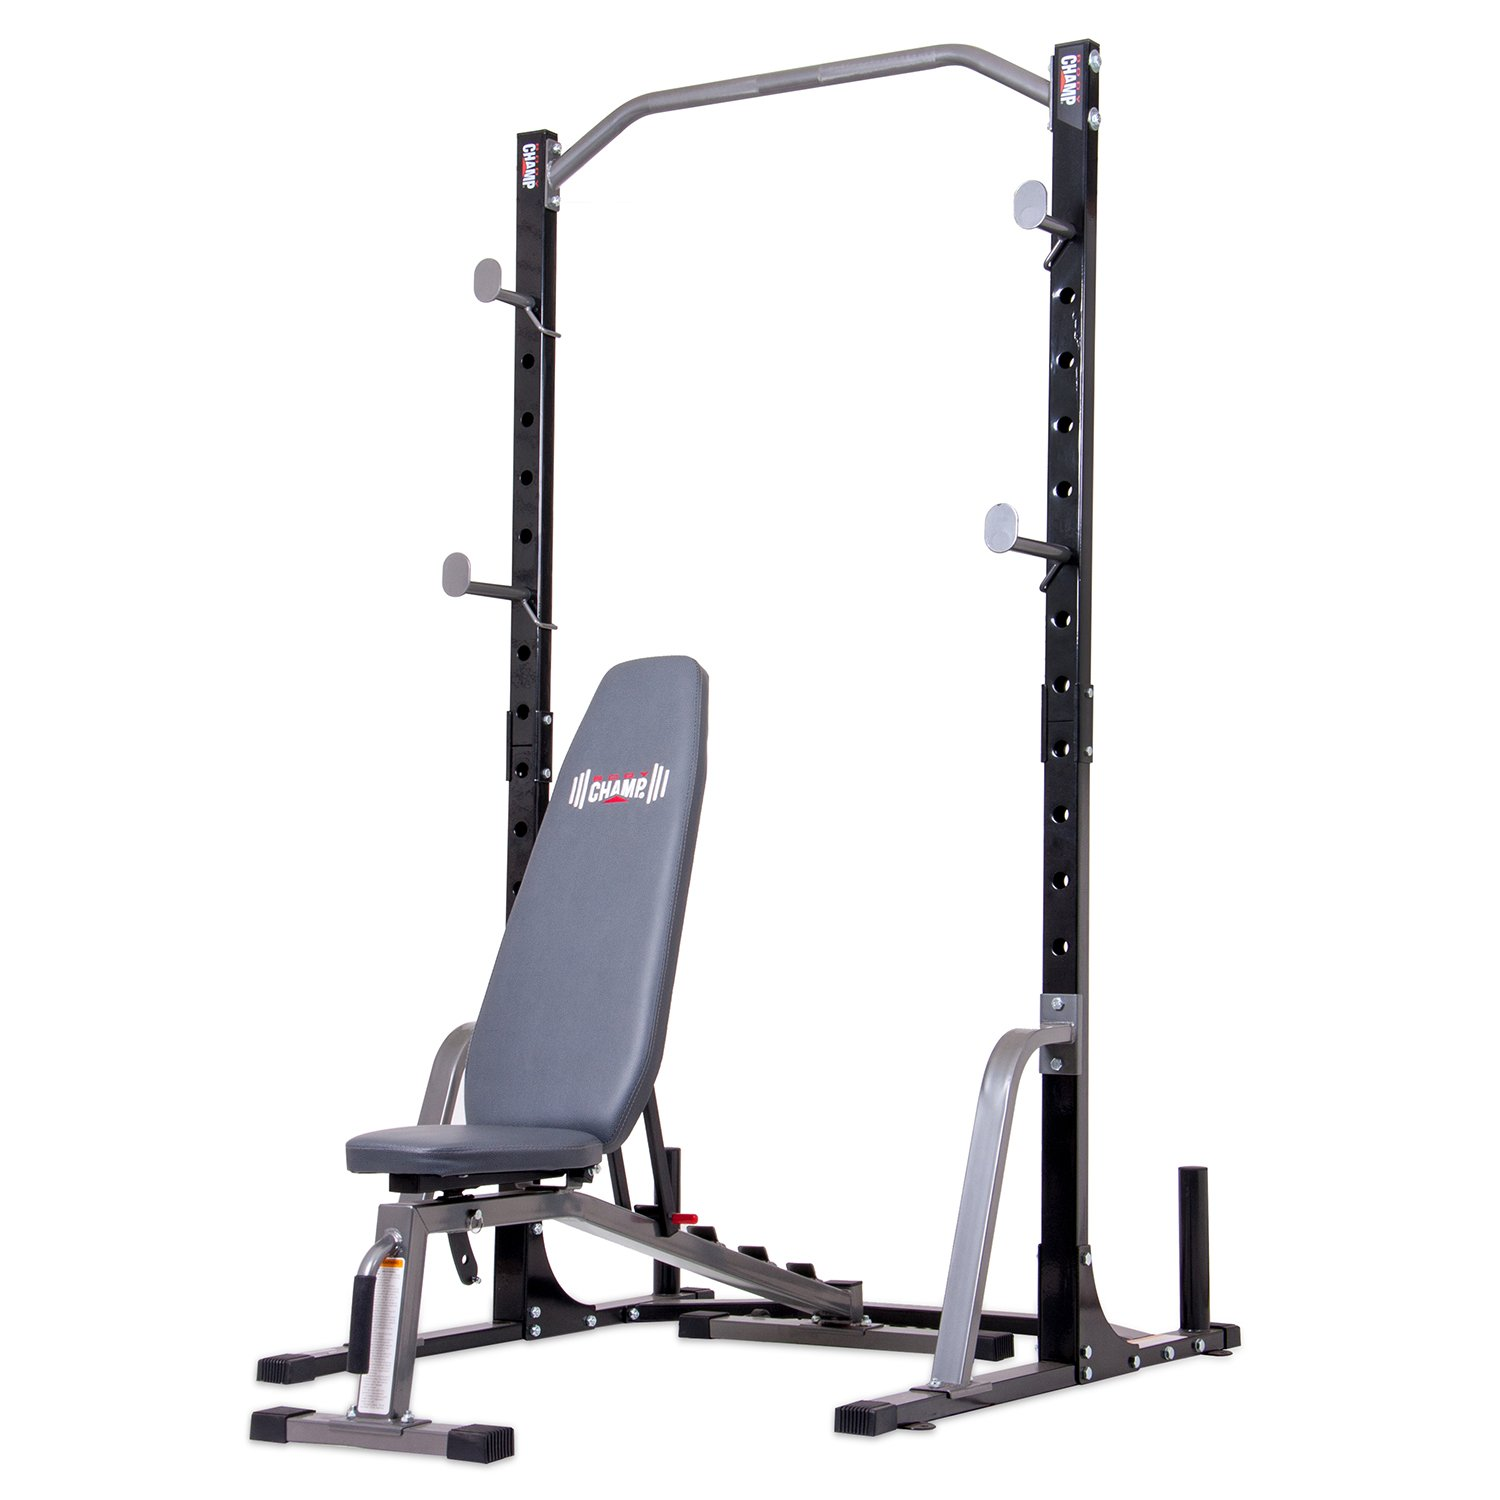 body champ pbc530 power rack system with olympic weight plate storage and bench